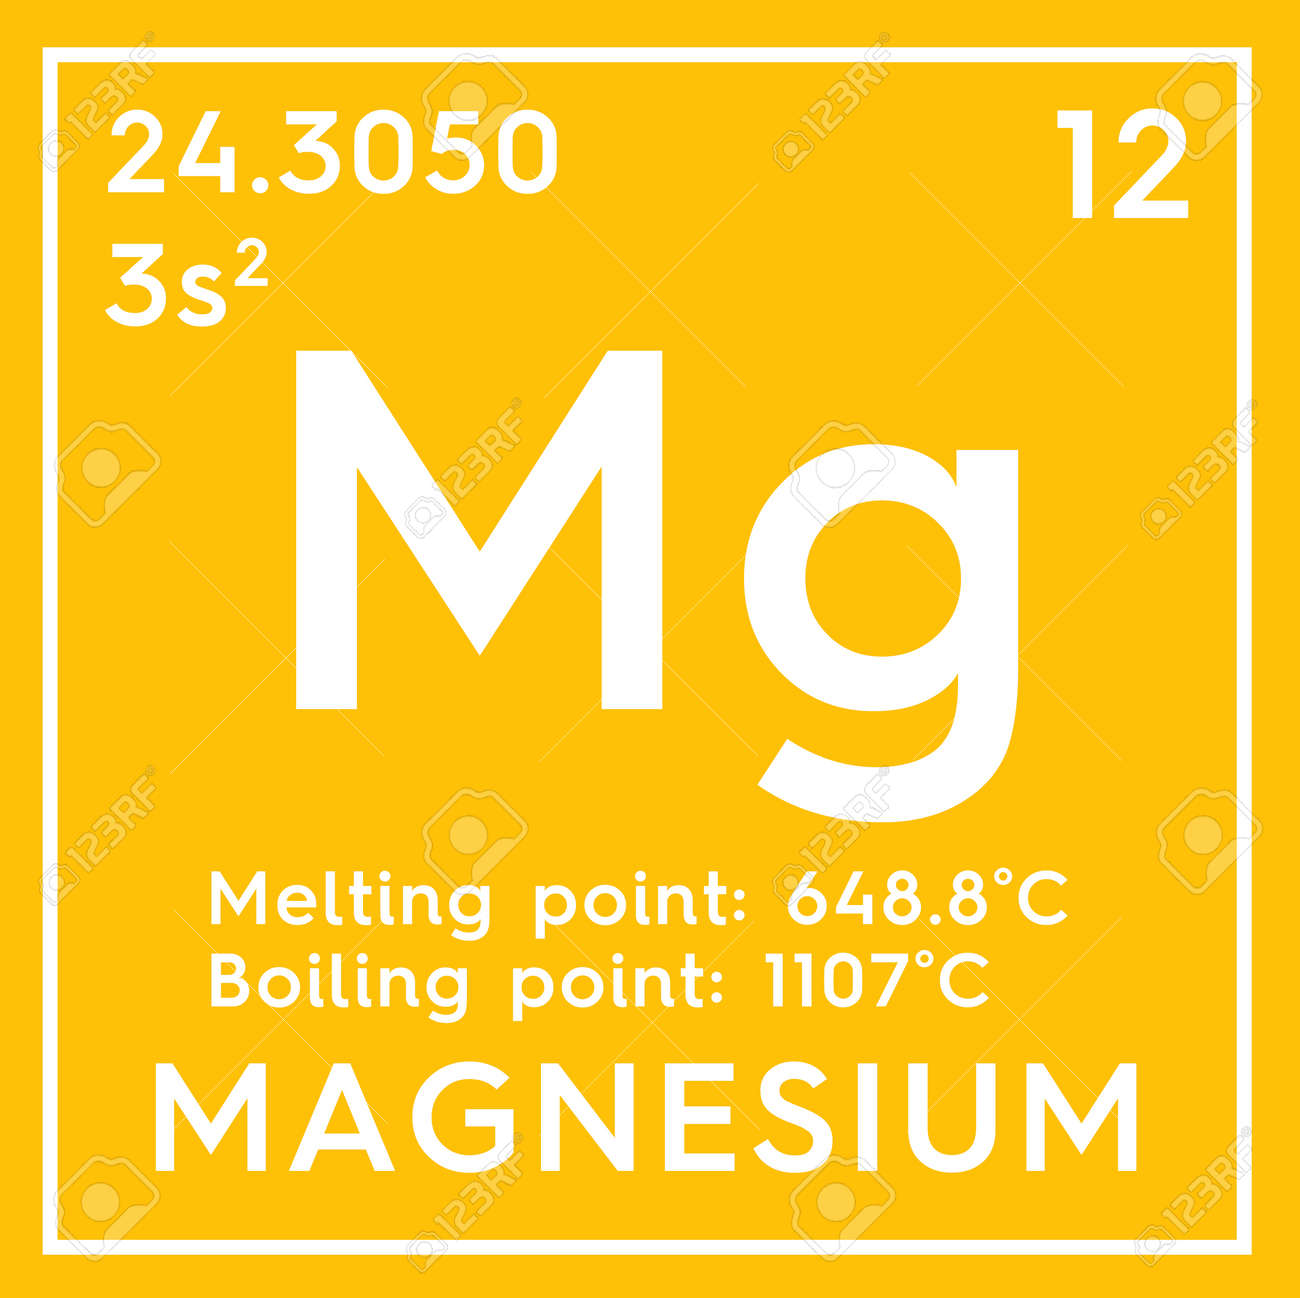 Magnesium alkaline earth metals chemical element of mendeleevs alkaline earth metals chemical element of mendeleevs periodic table in square cube urtaz Image collections